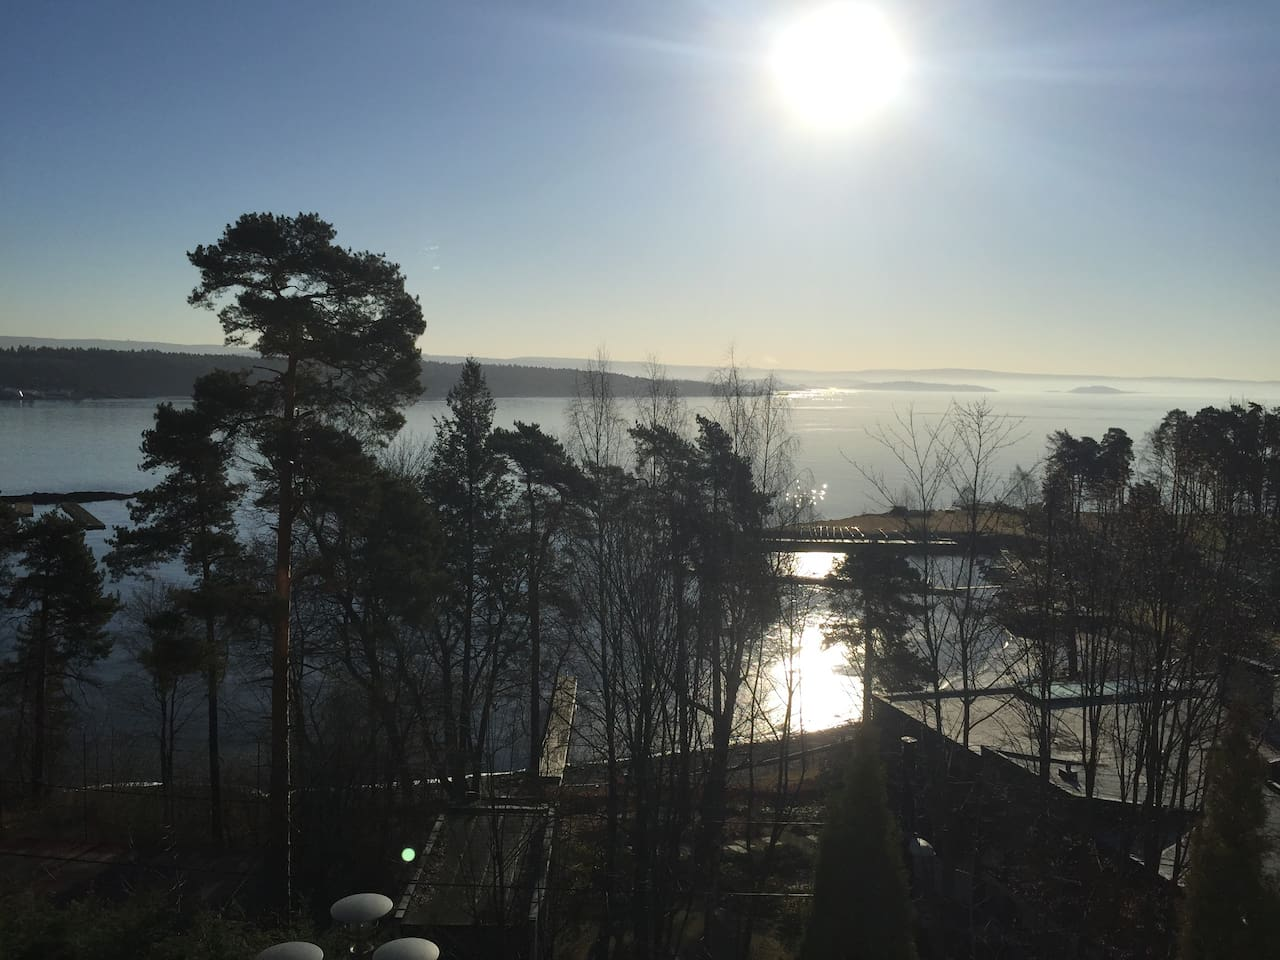 View from the main floor - the Oslofjord in early spring morning light